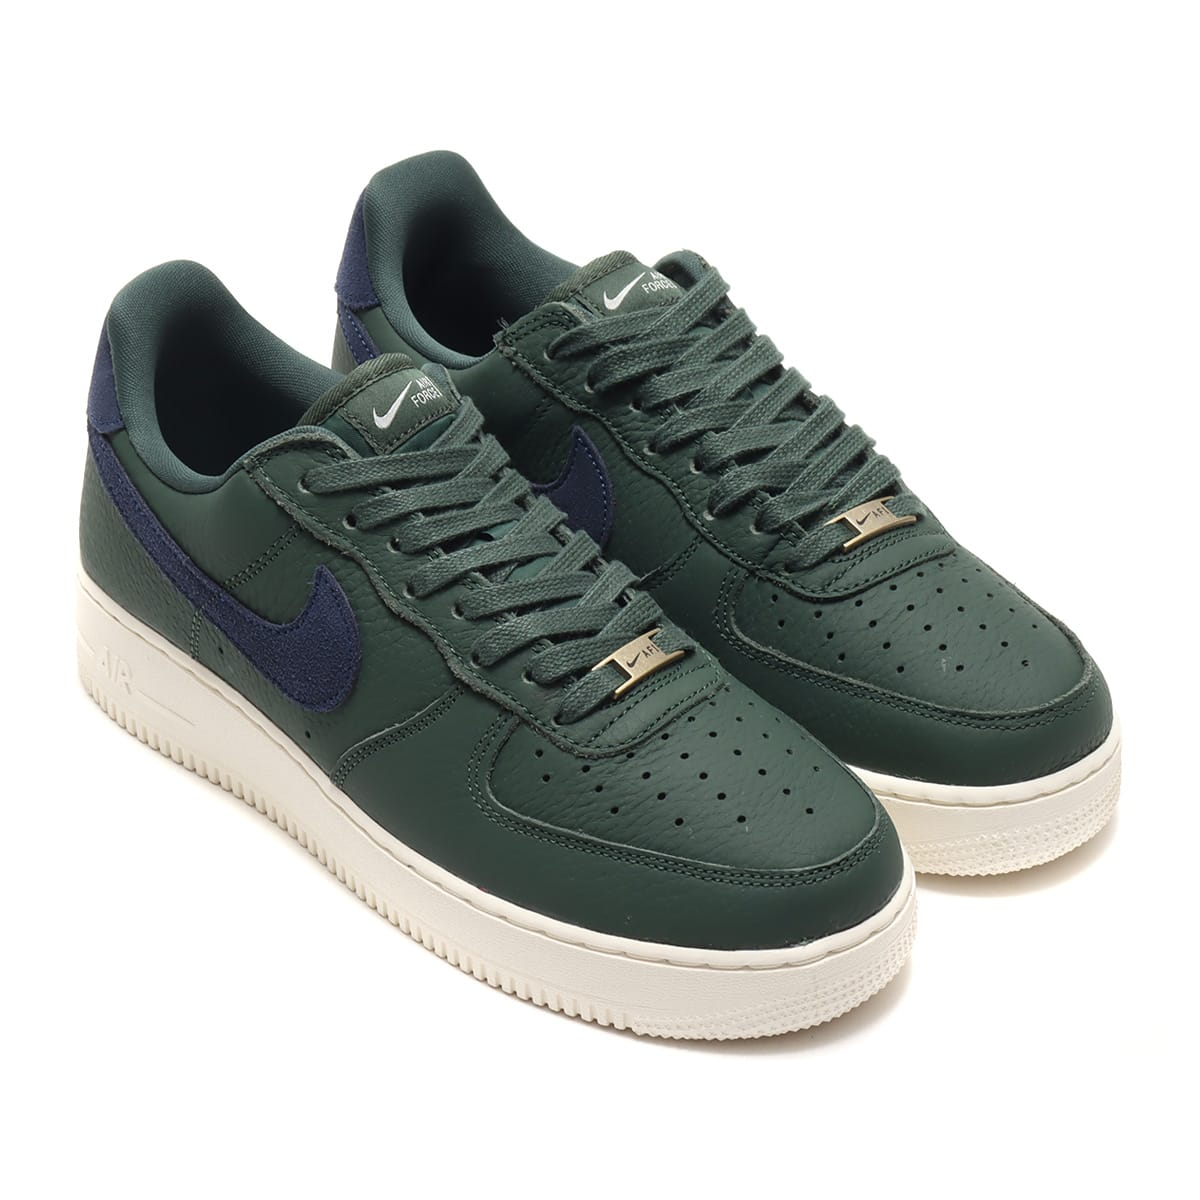 NIKE AIR FORCE 1 '07 CRAFT GALACTIC JADE/MIDNIGHT NAVY 21SP-I_photo_large